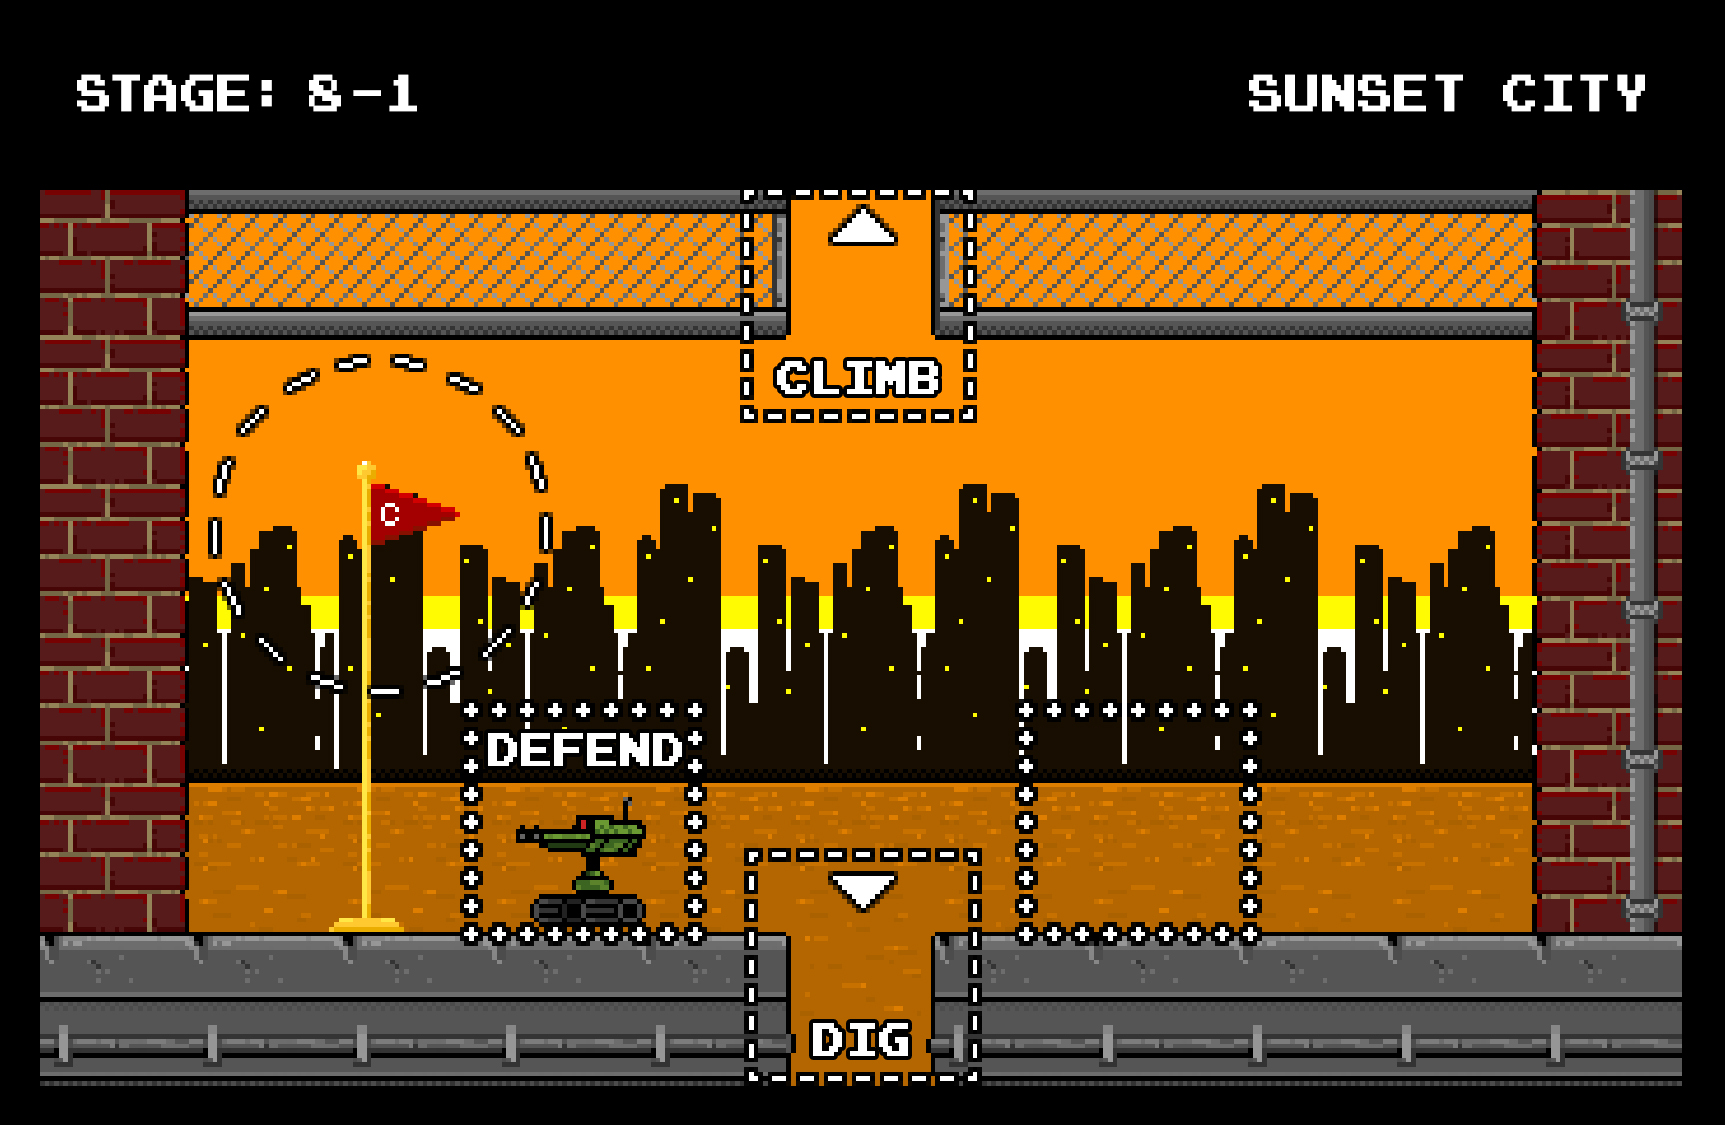 SHQ_STAGES_8-1_SUNSETCITY.jpg